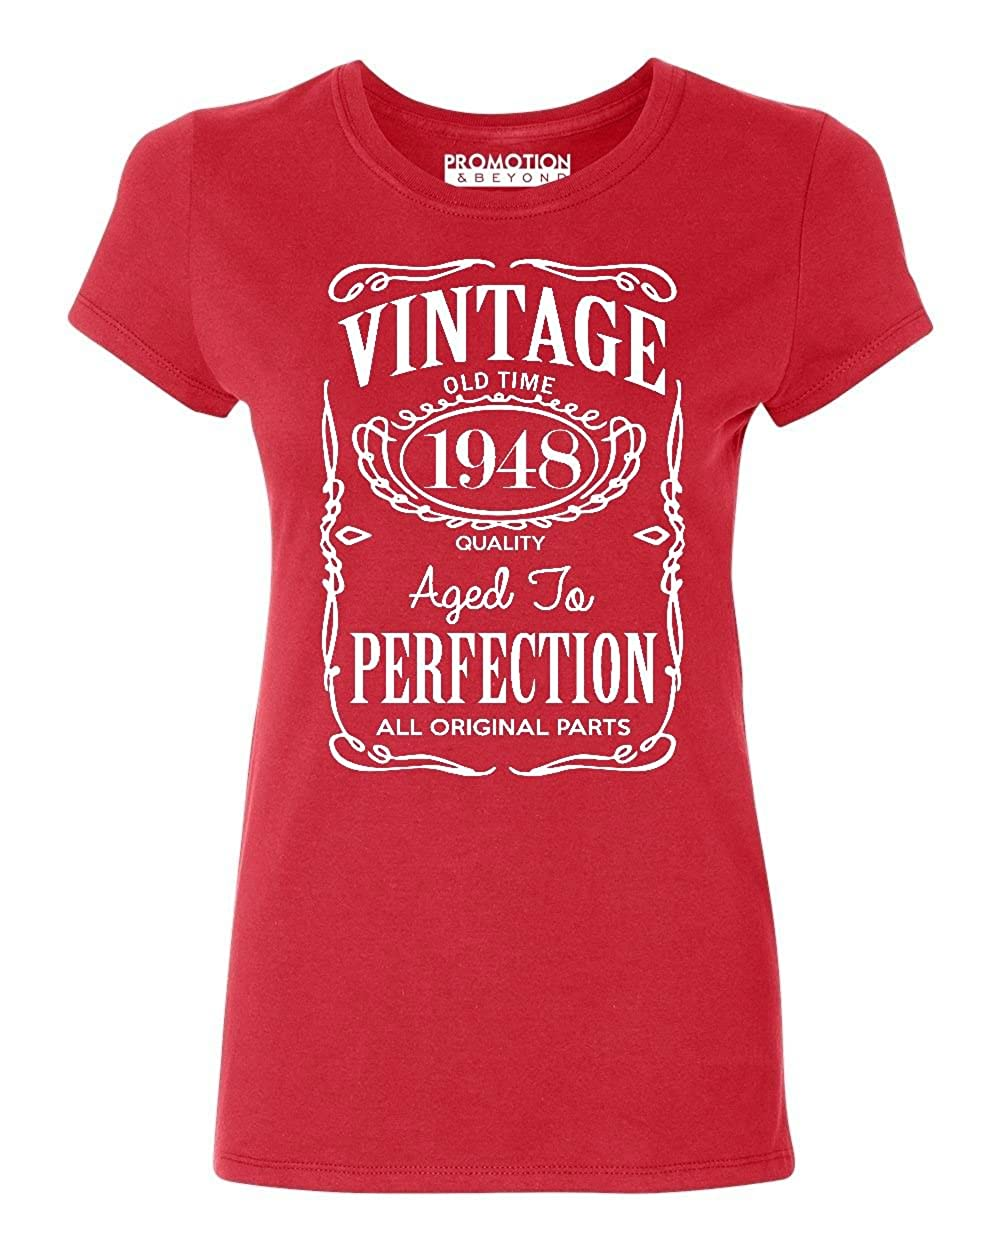 Promotion & Beyond 70th Birthday Vintage 1948 Women's T-Shirt